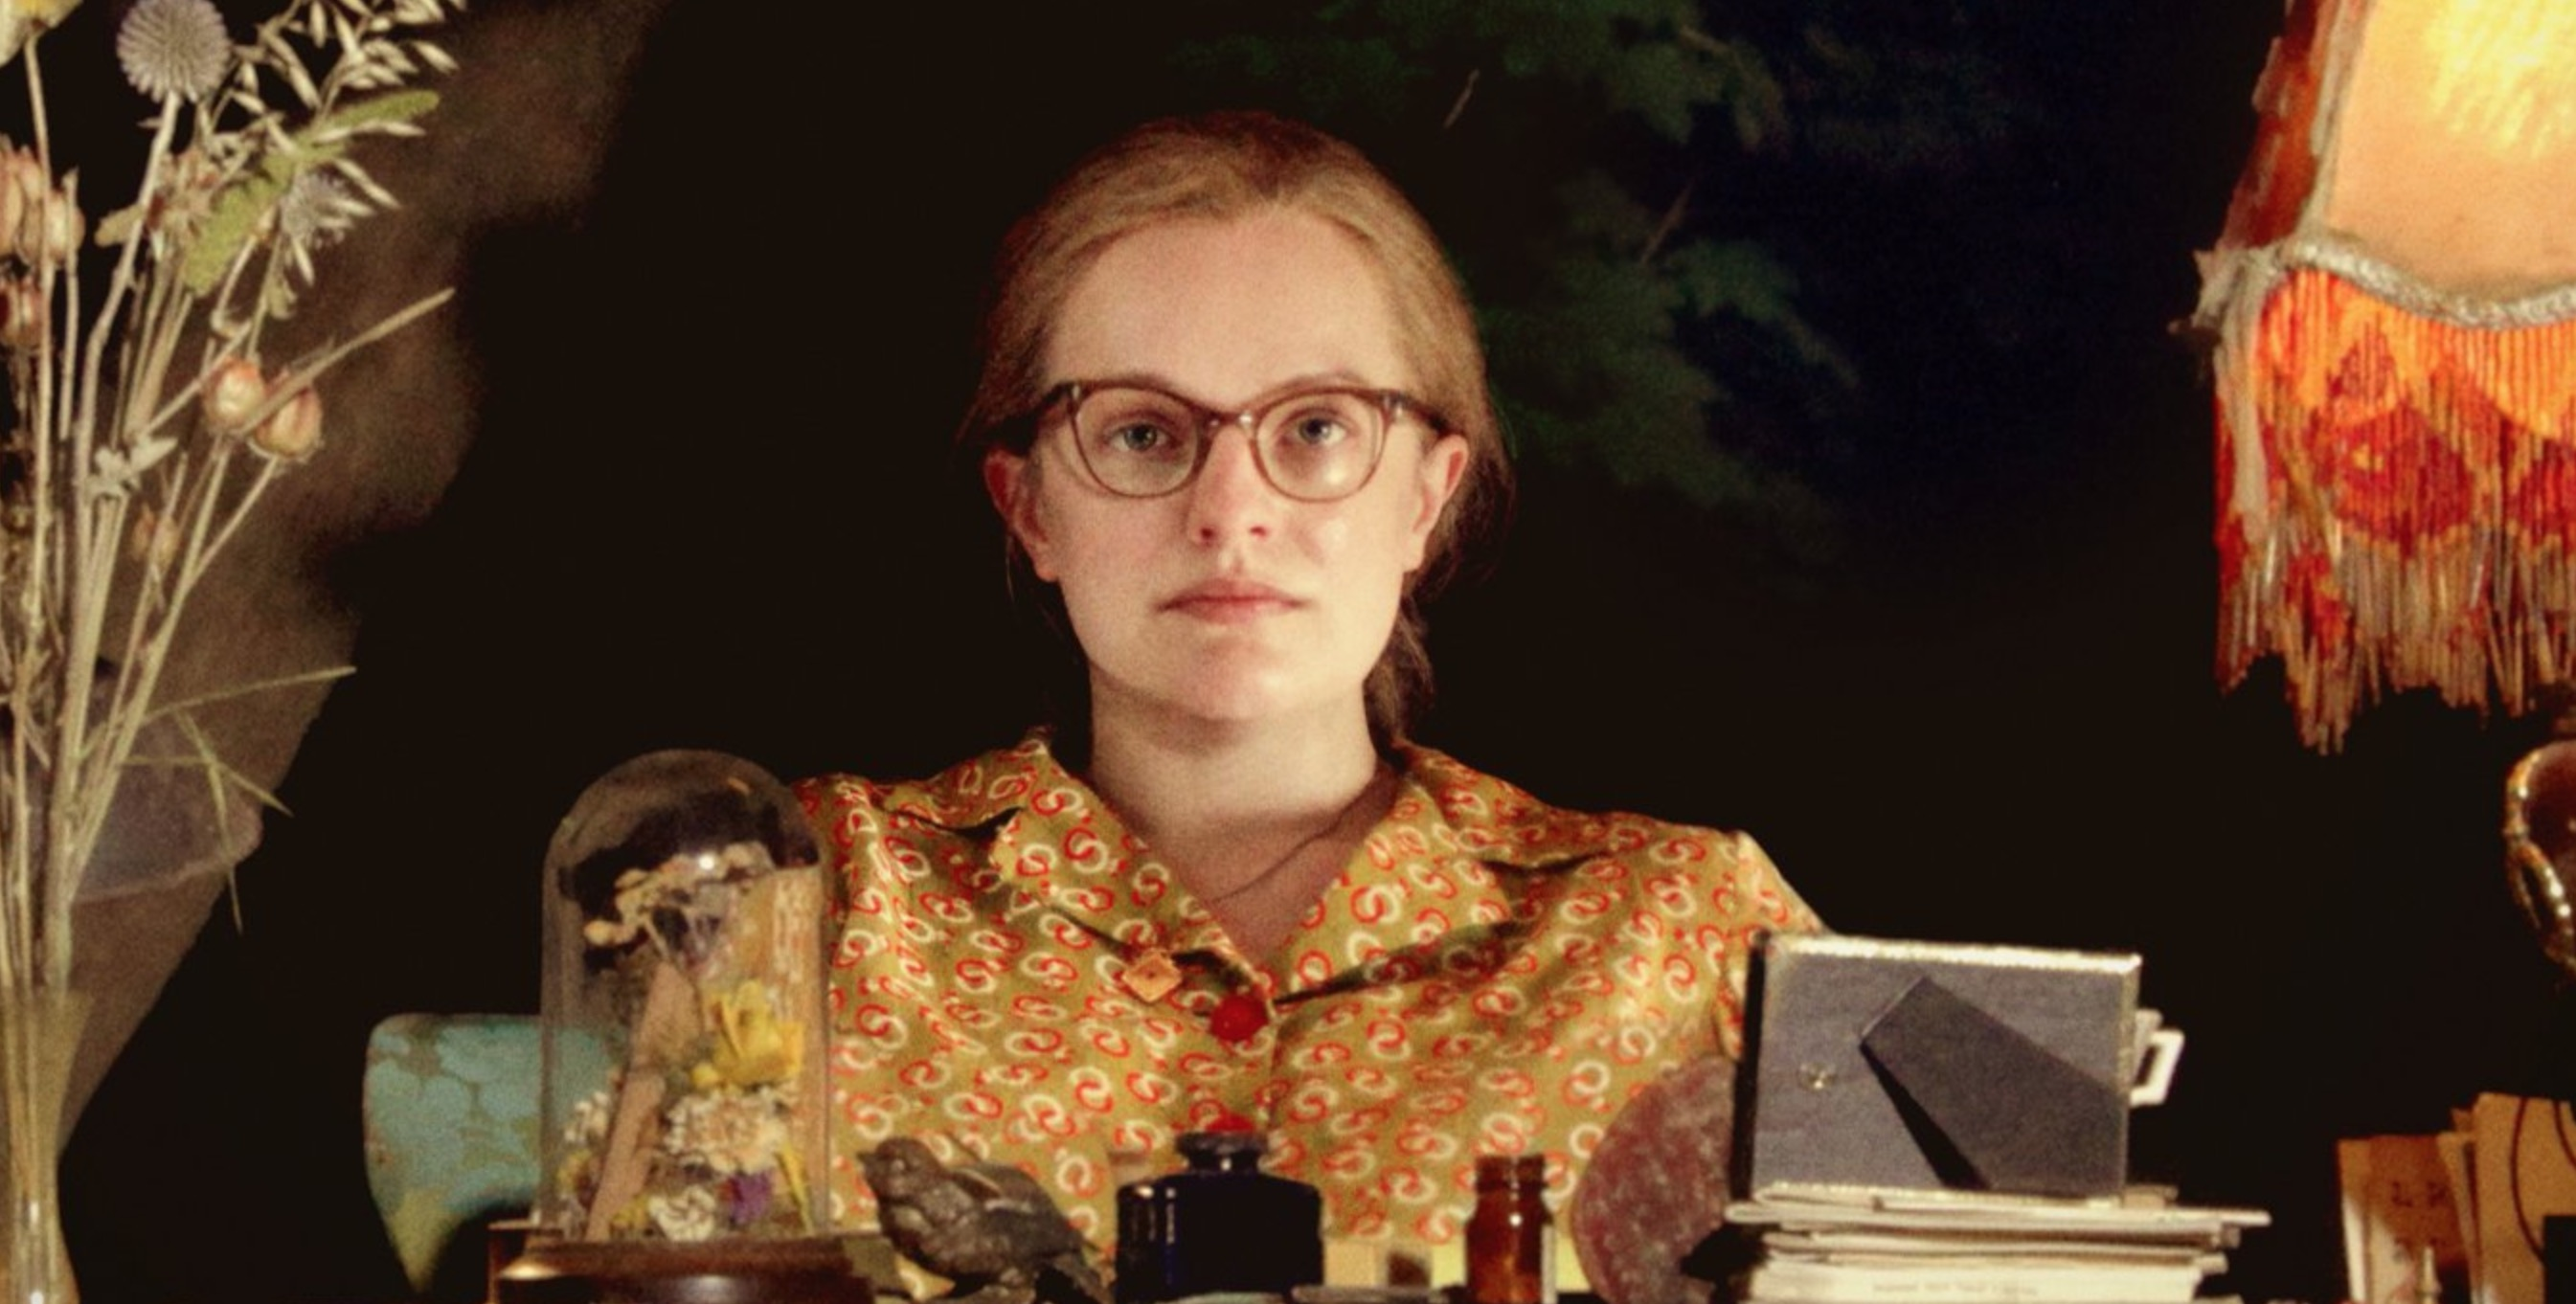 Elisabeth Moss Gives Another Great Performance In Shirley Trailer